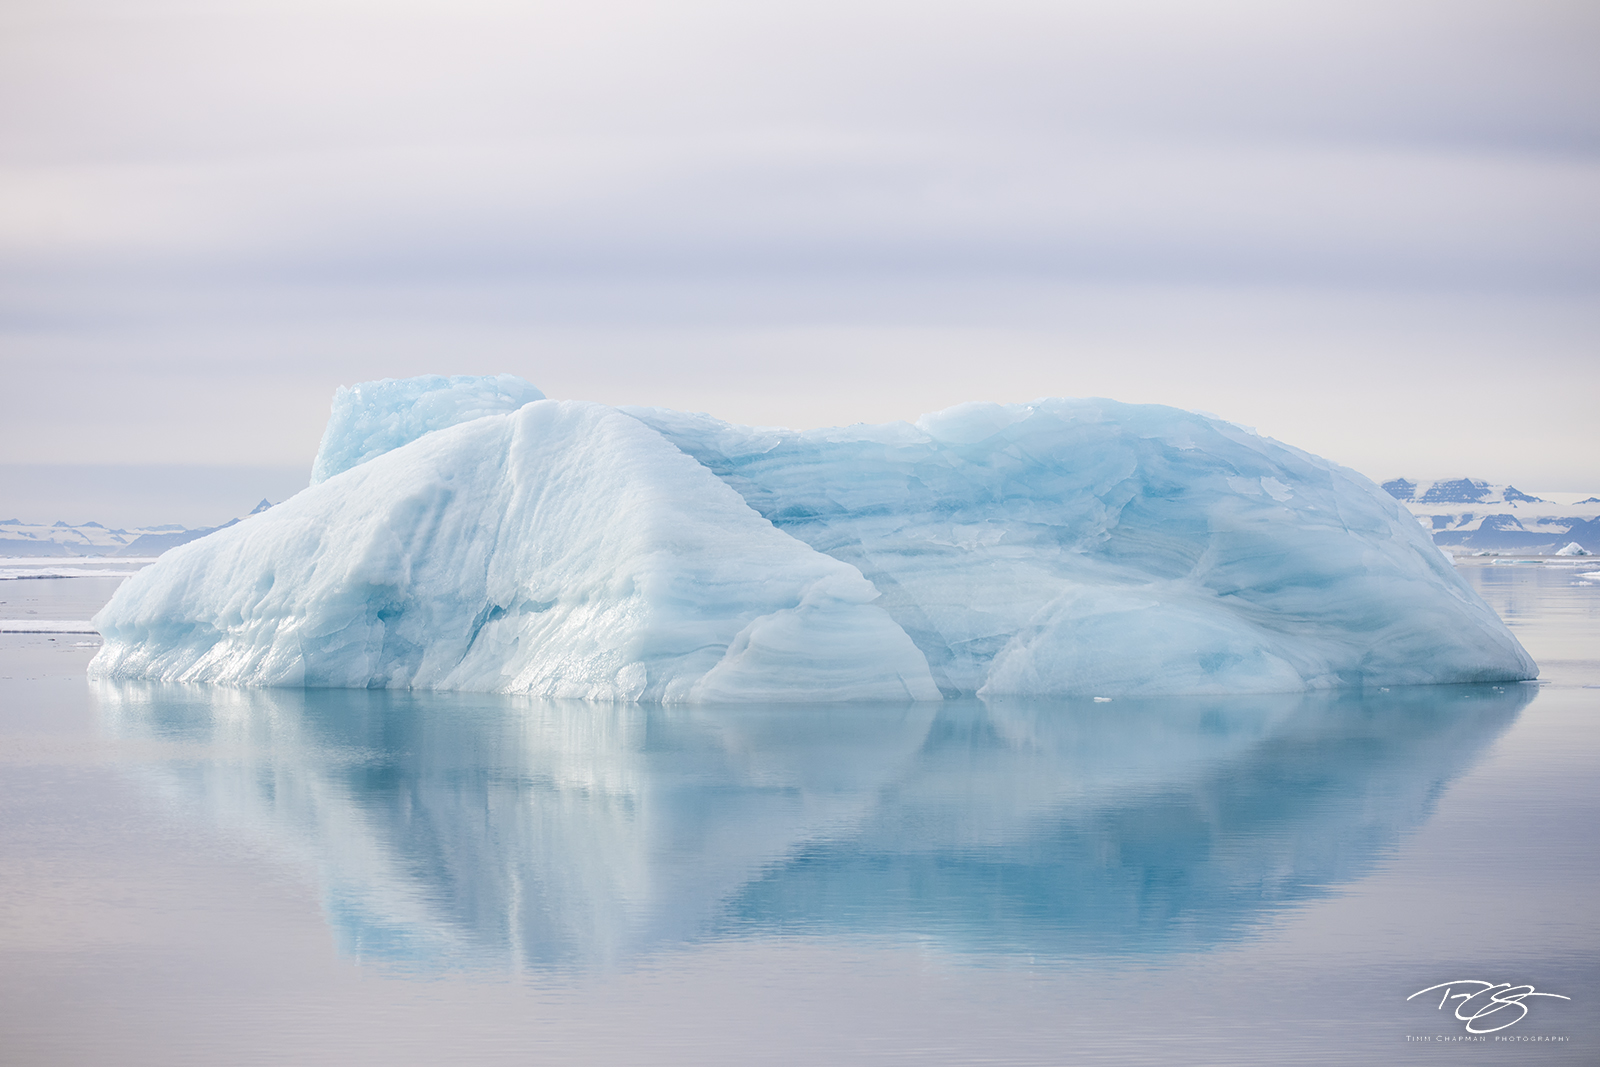 ice; iceberg; blue ice, calm, tranquil, reflection, peaceful, at peace, photo